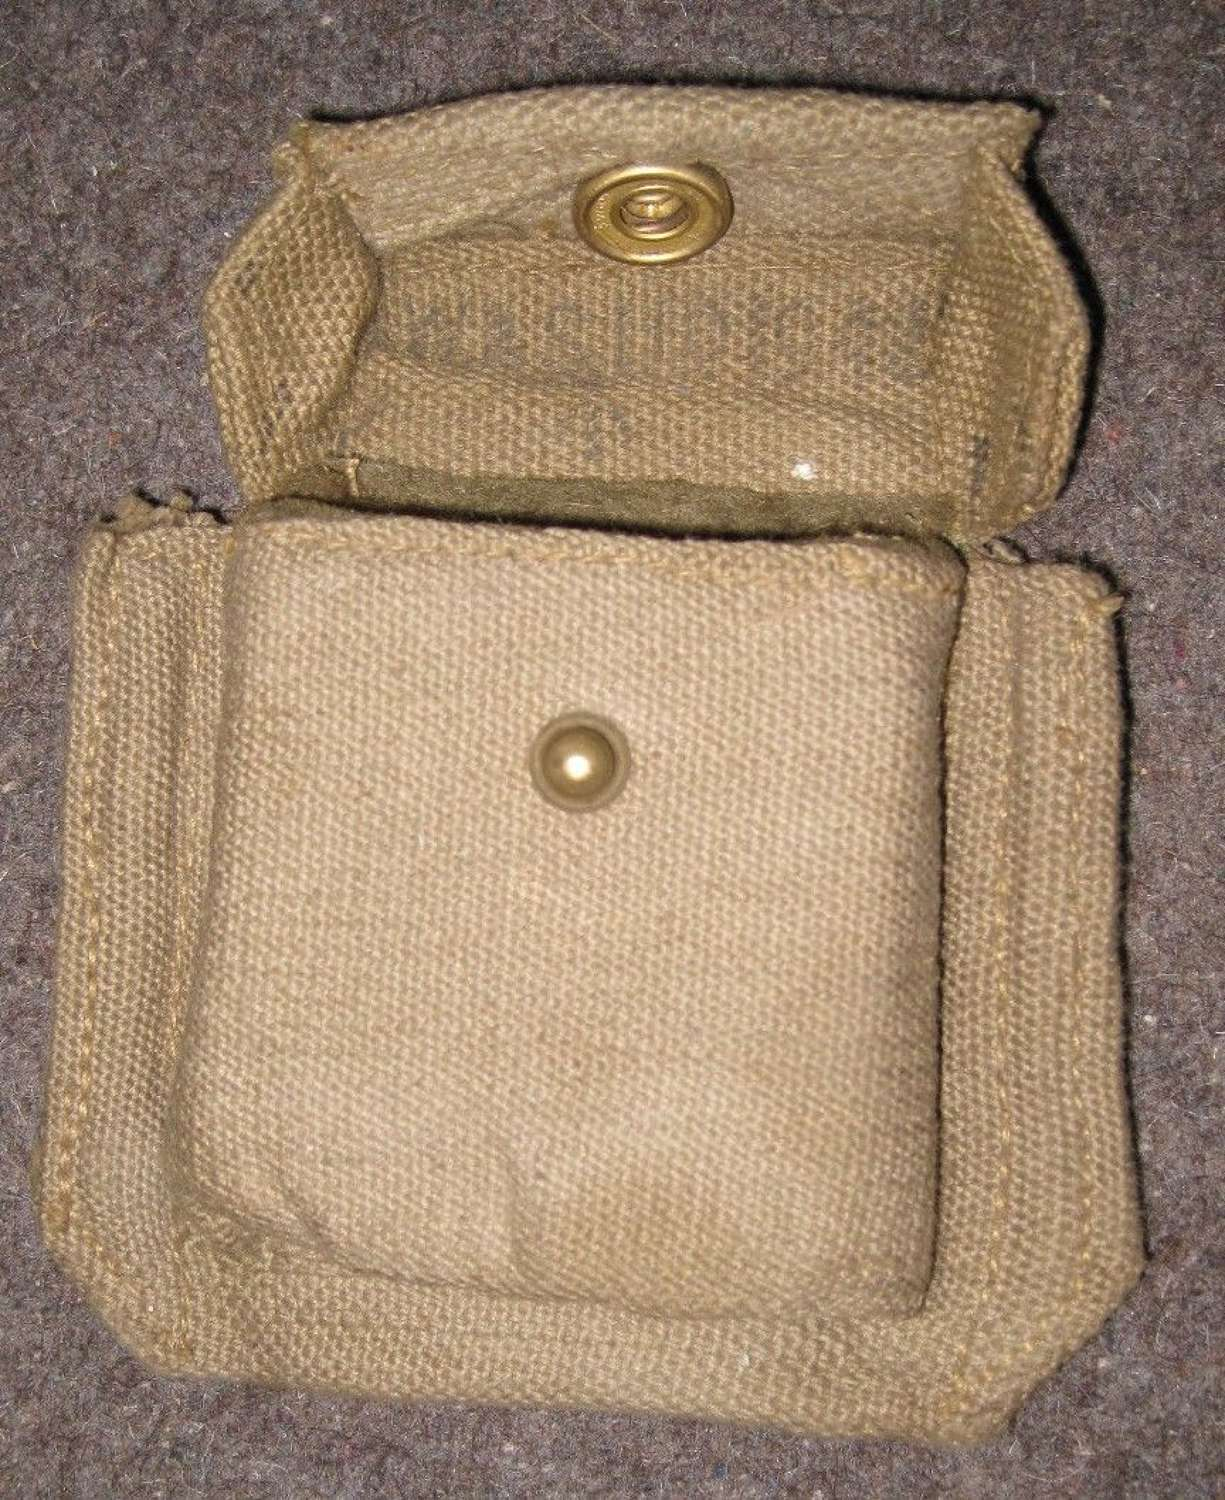 A GOOD CONDITION 37 PATTERN WEBBING COMPASS POUCH